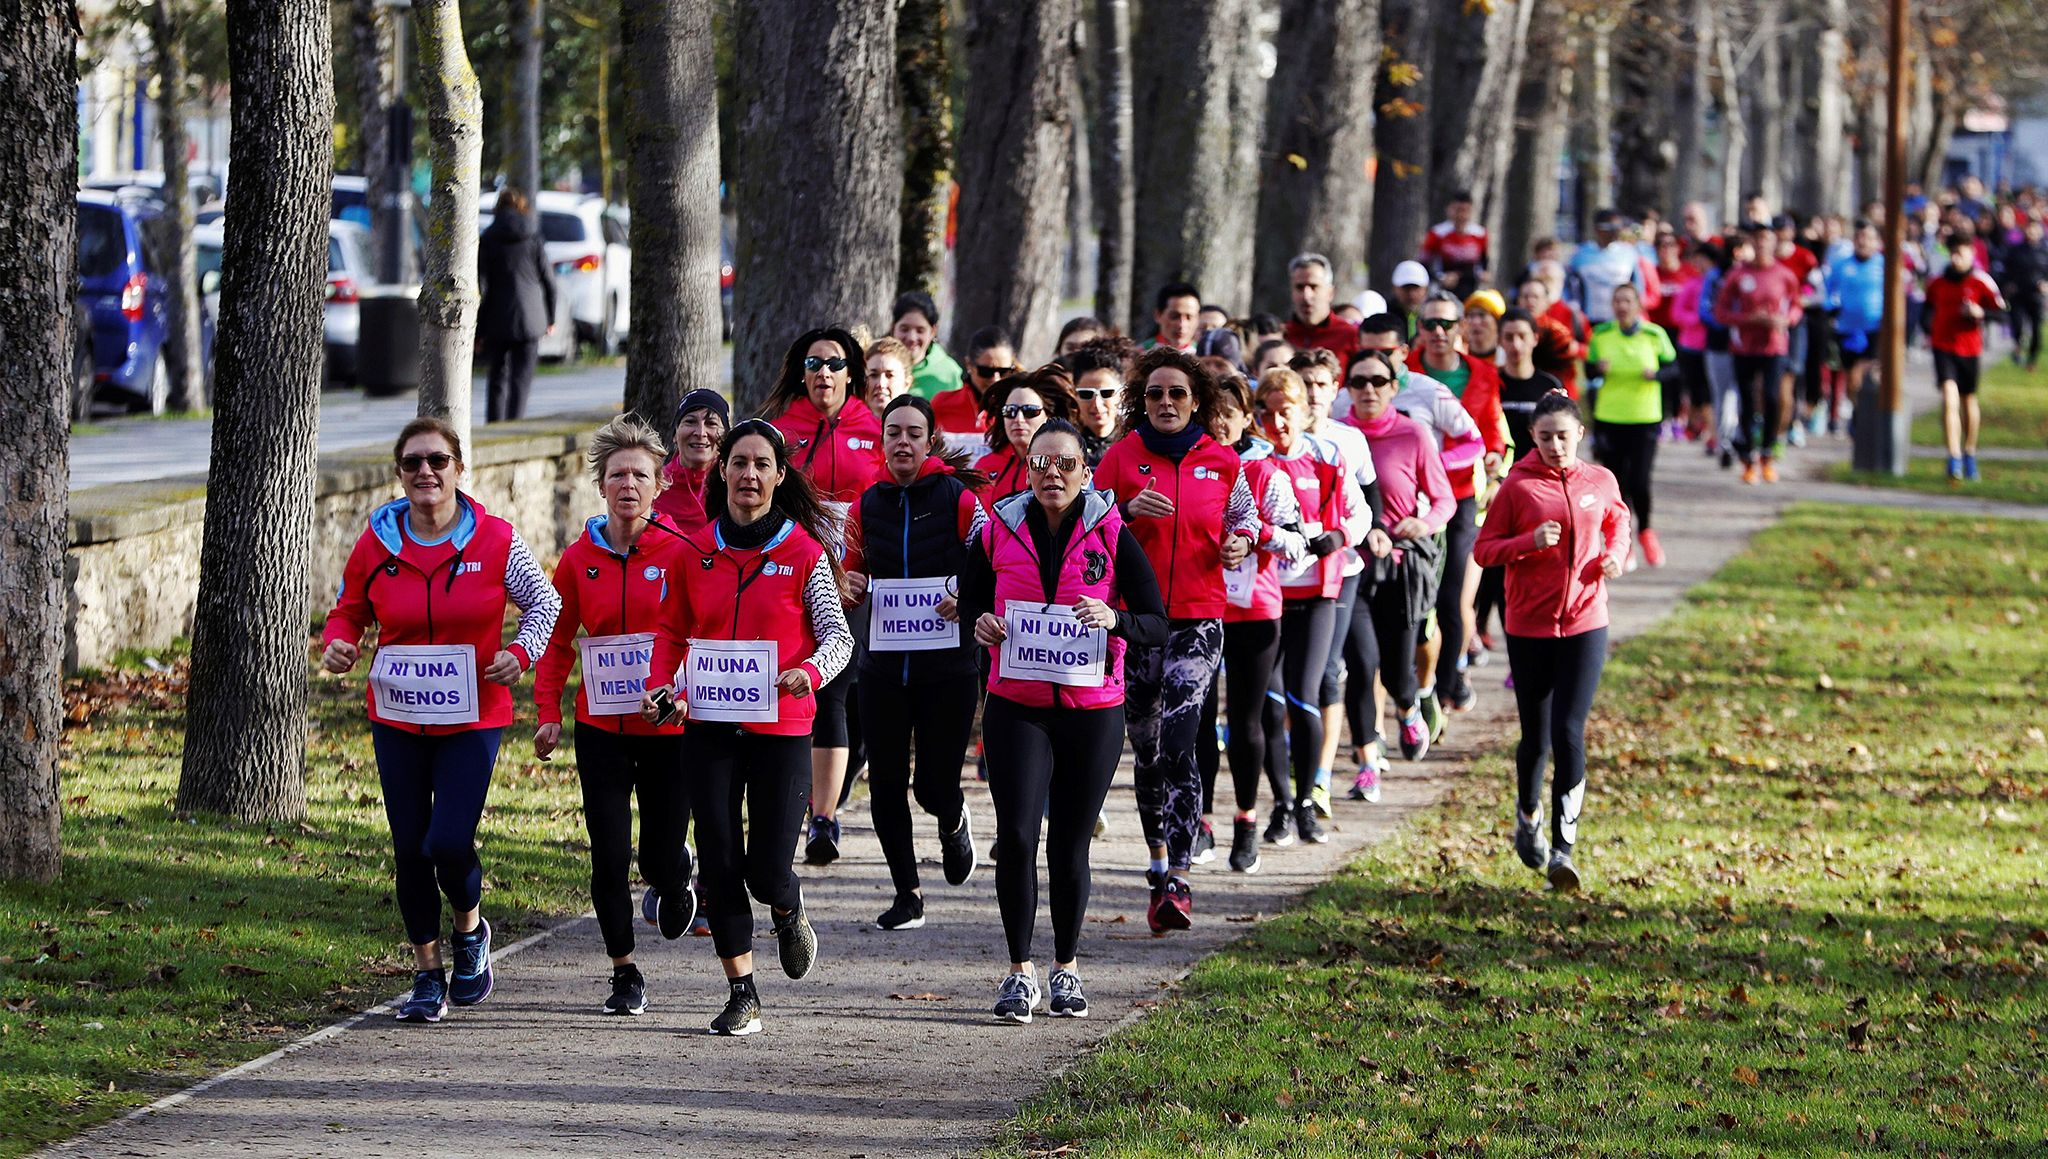 In Spain, A Young Woman's Killing Galvanizes Women to Assert Their Freedom to Run